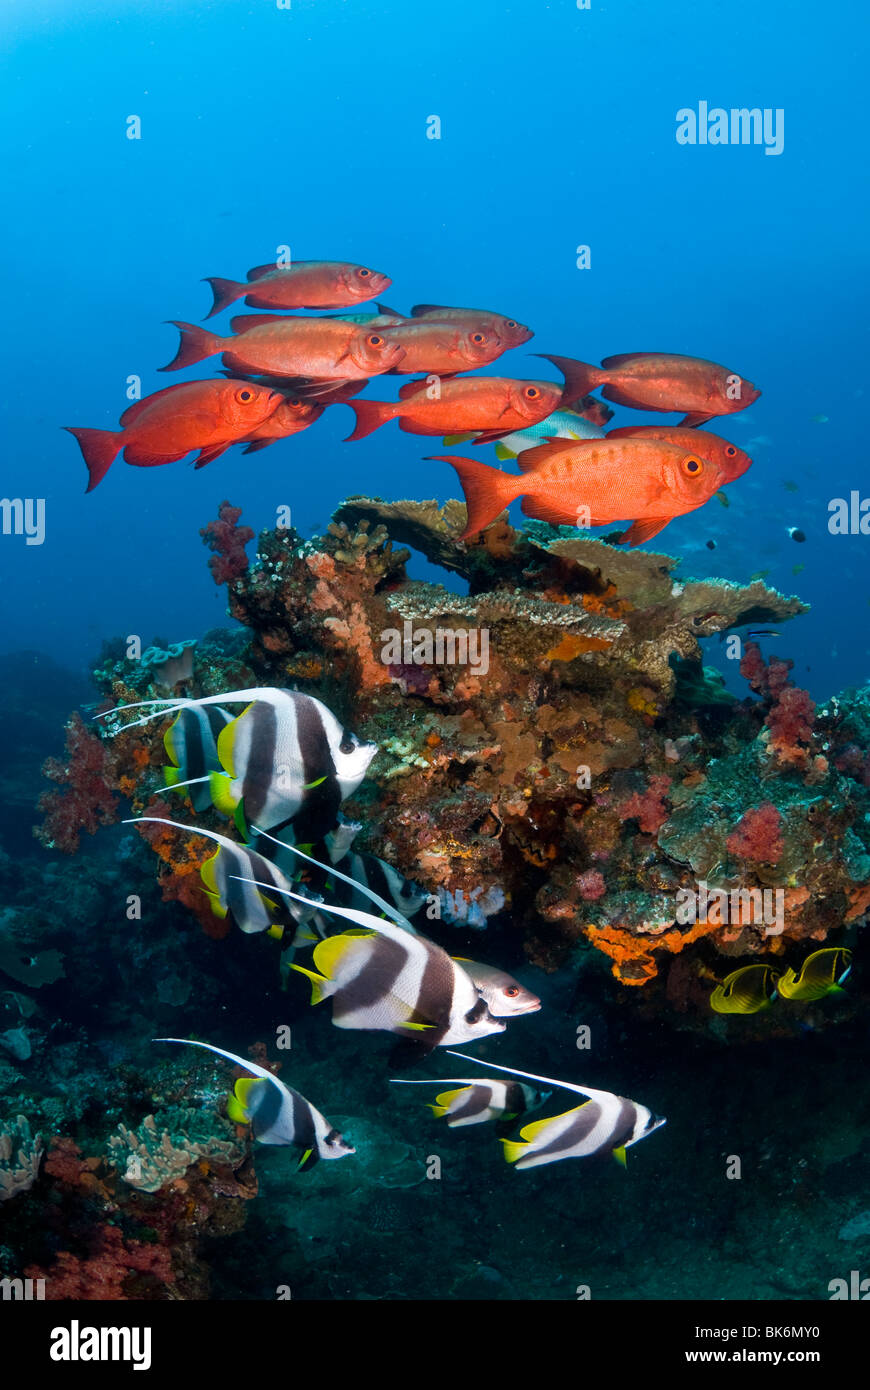 School of big eye snappers and banner fish, South Africa, Indian Ocea Stock Photo